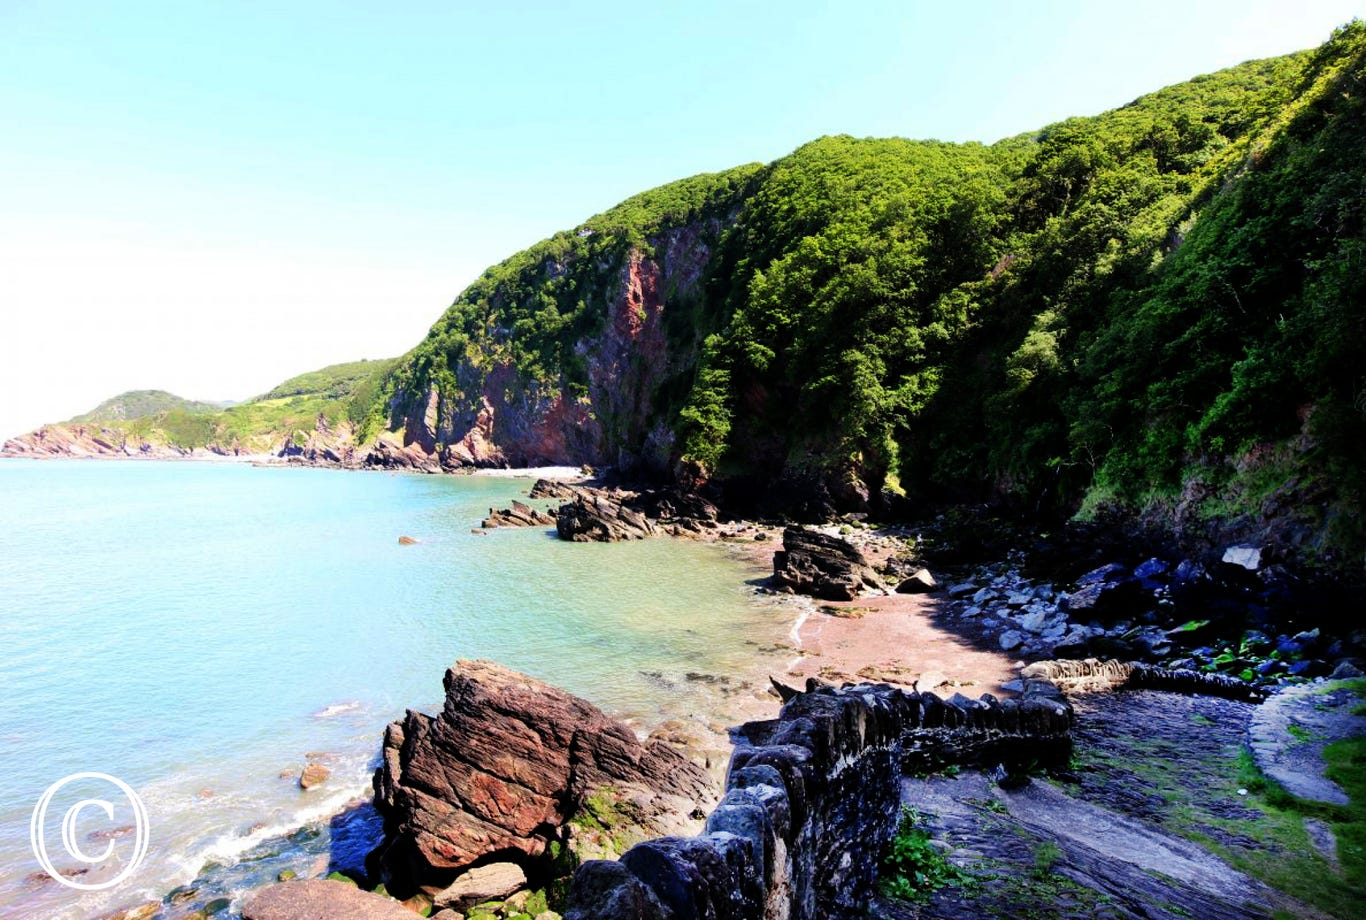 Wood Bay is a few miles from Lynton and is a lovely secluded peaceful spot